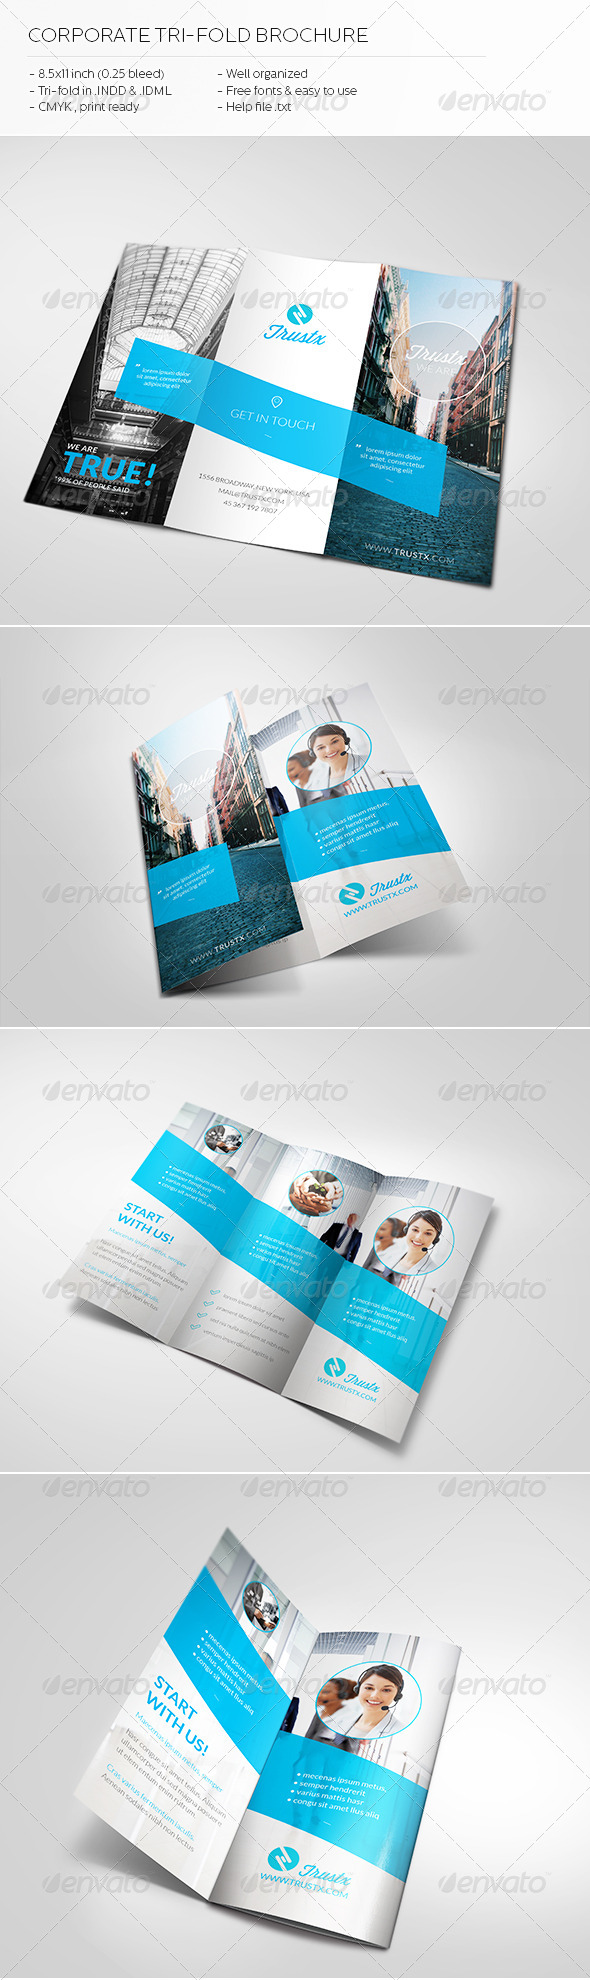 GraphicRiver Trustx Corporate Tri-fold Brochure 5434572